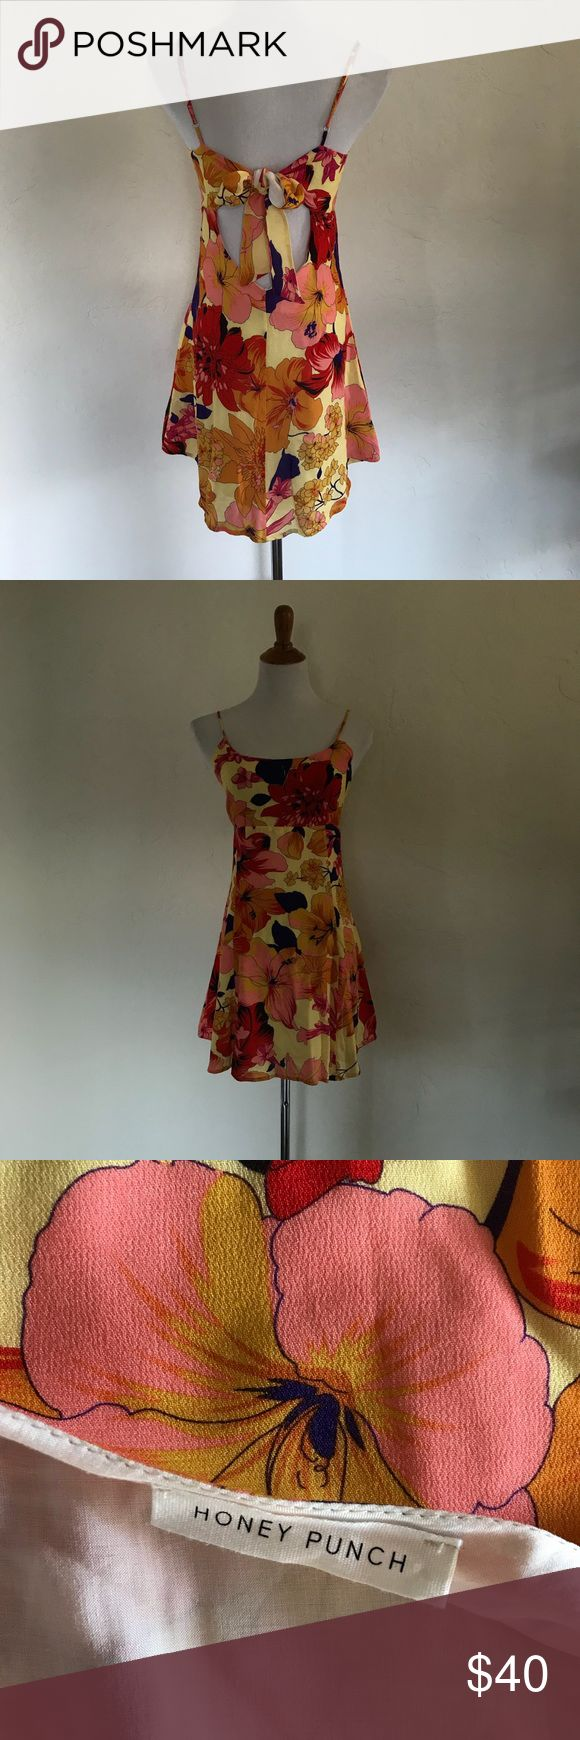 Hawaiian print dress Adjustable straps fully lined. Great for upcoming season. Excellent condition Honey Punch Dresses Mini